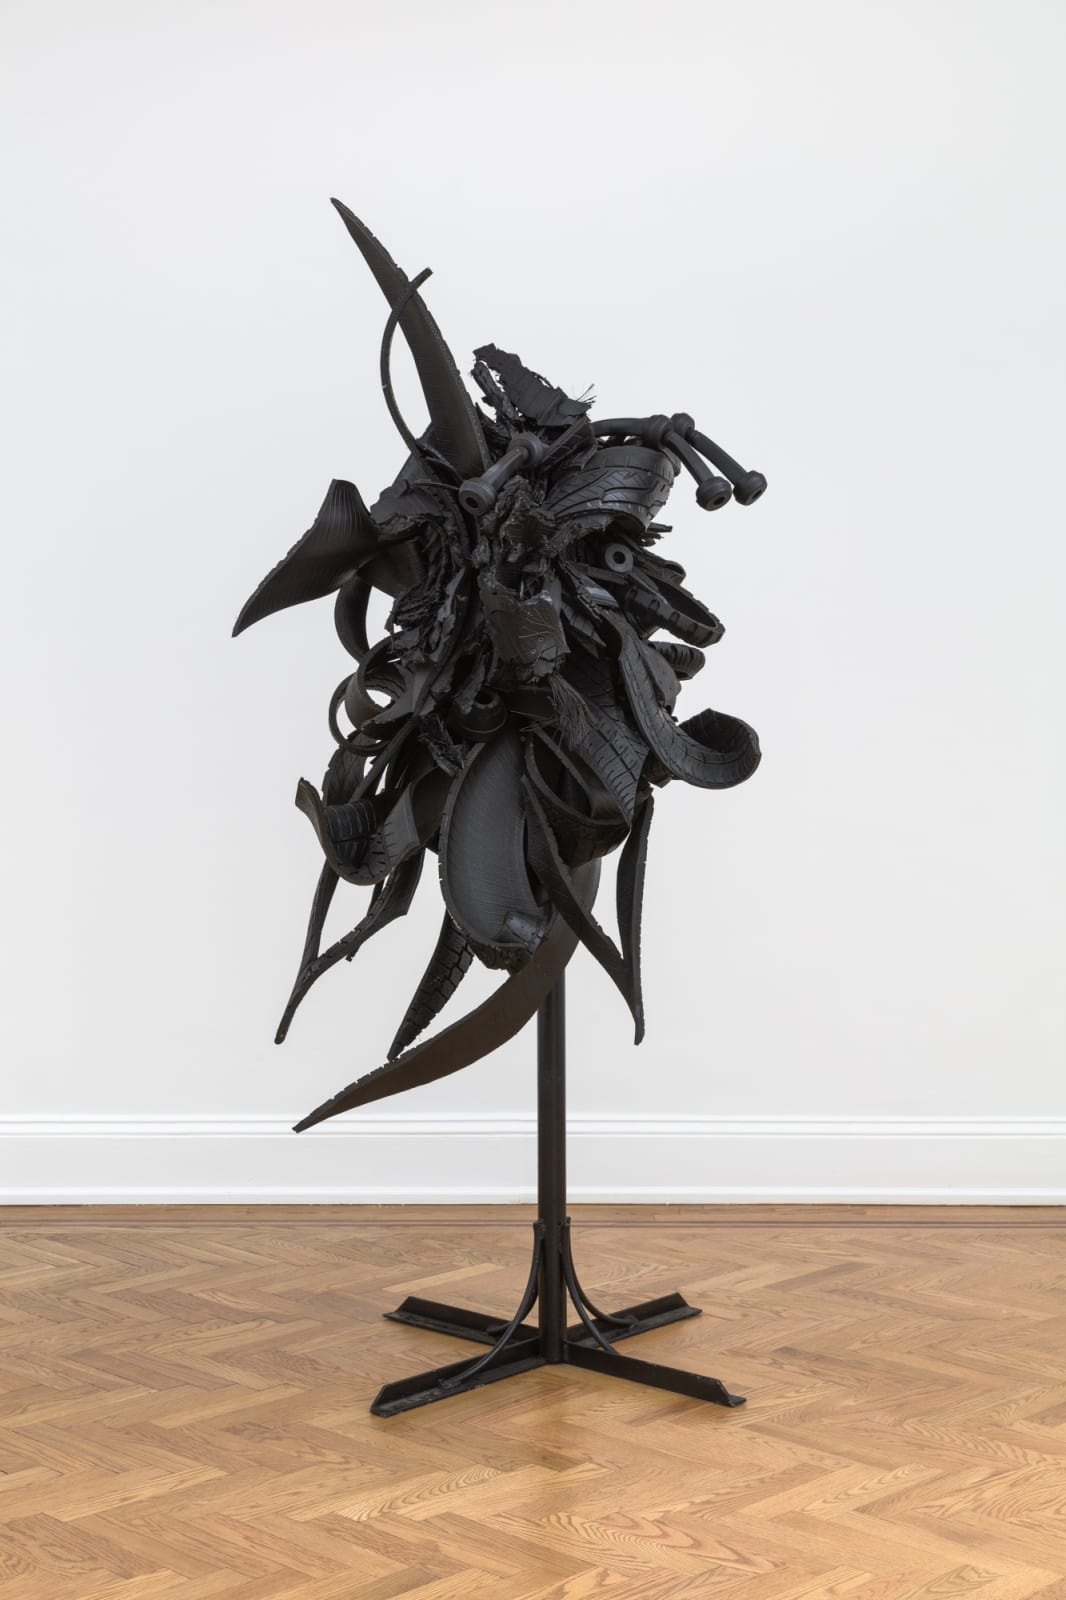 Chakaia Booker (b. 1953) Splintered Reality, 2003 rubber tires and wood 45 1/2 x 42 x 37 1/2 in (115.6 x 106.7 x 95.3 cm) (CHB7787)